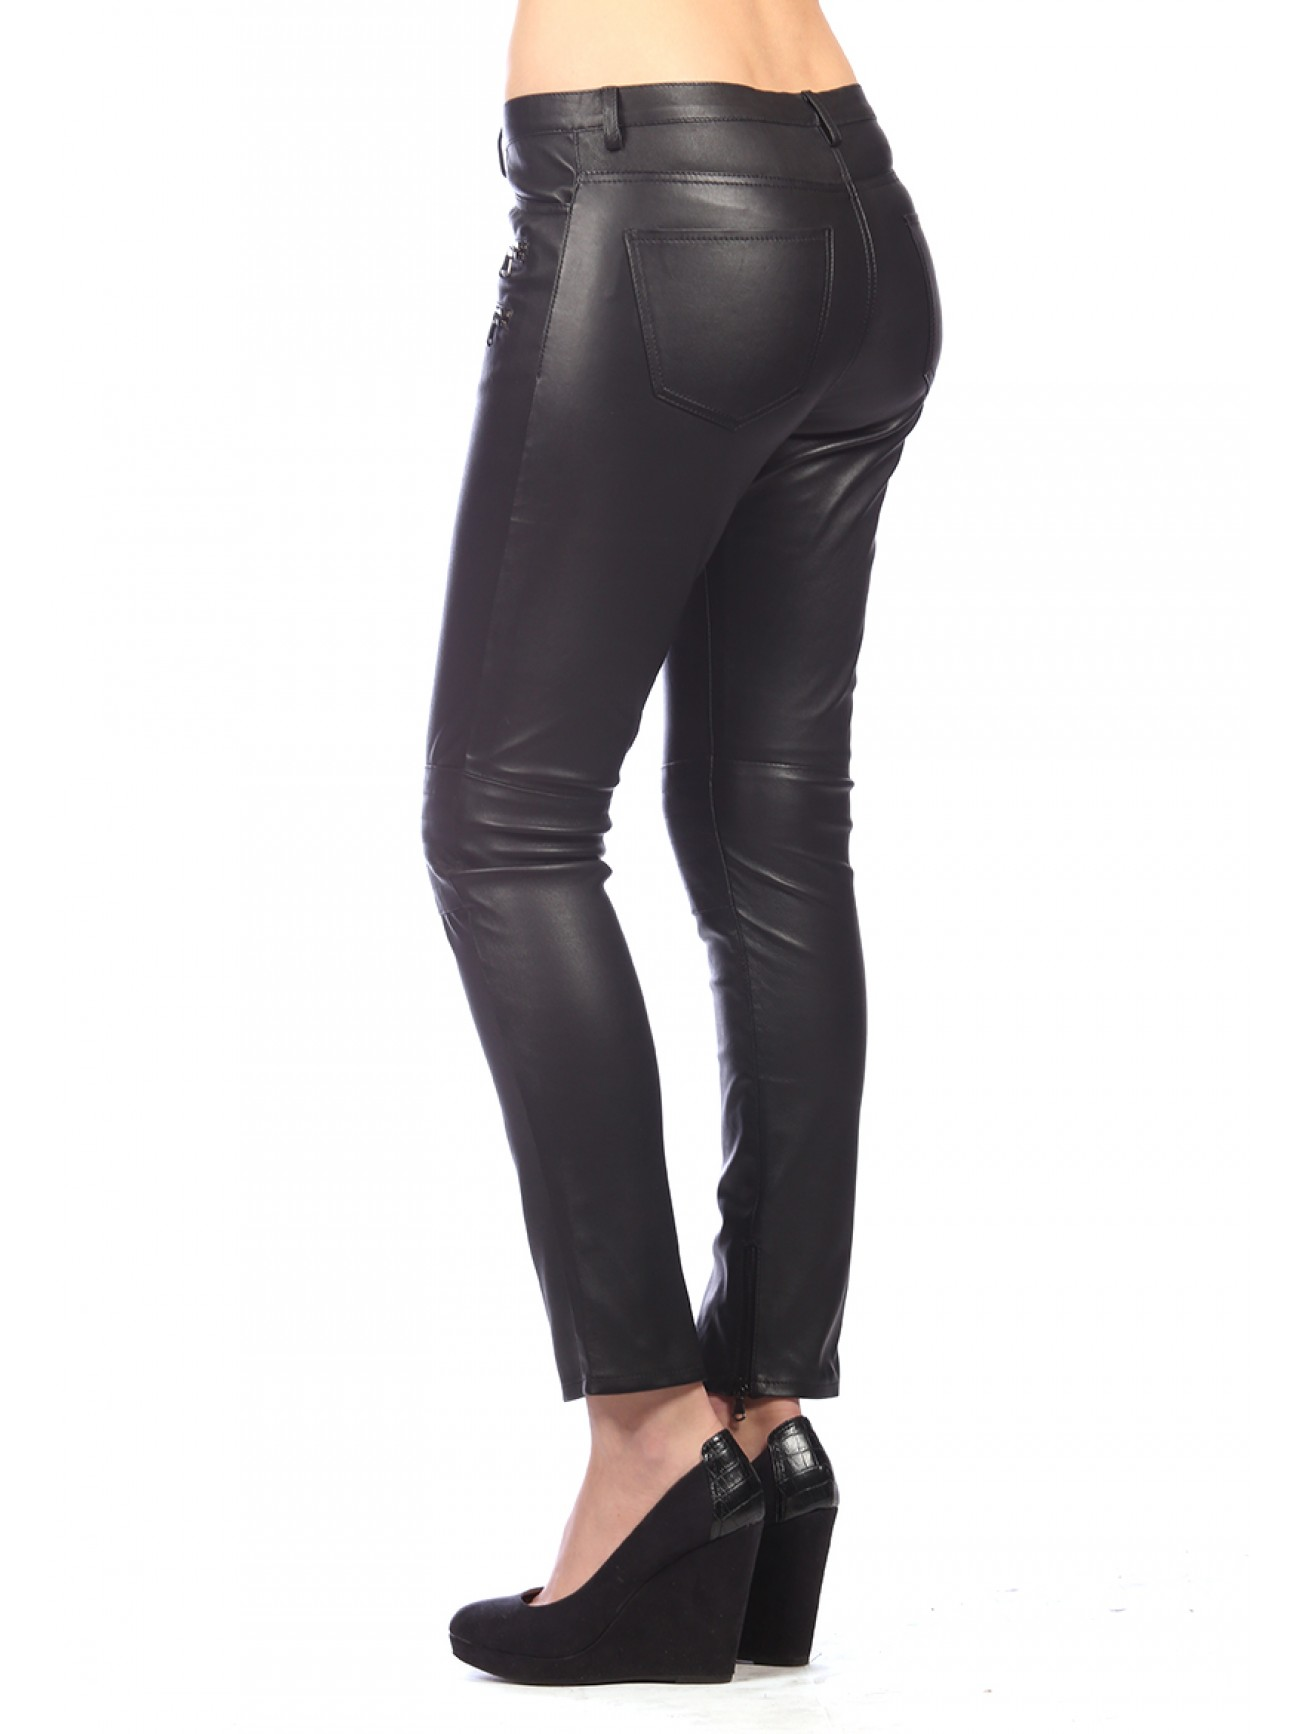 Appealing as the idea of leather trousers is, the reality is that they won't actually look good on me. Leather trousers look best on the young and skinny, and people who are young and skinny are.